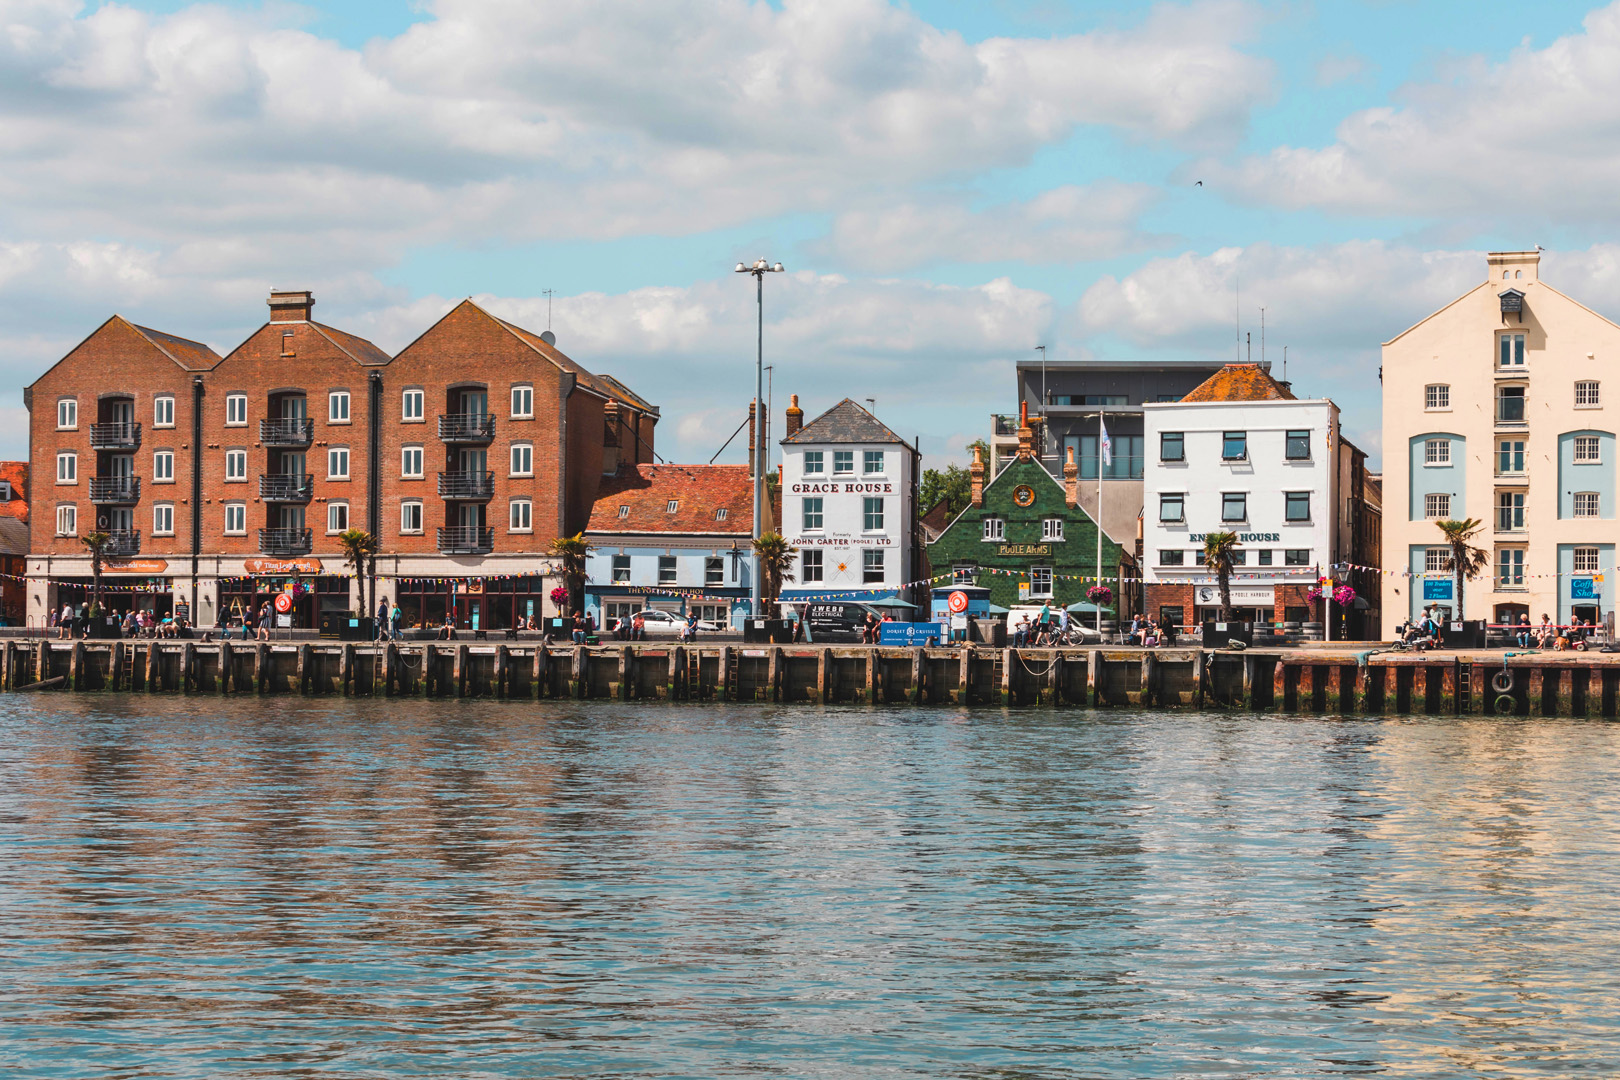 A neat shot of the different building all lined up along Poole Quay with bunting running across the front of them